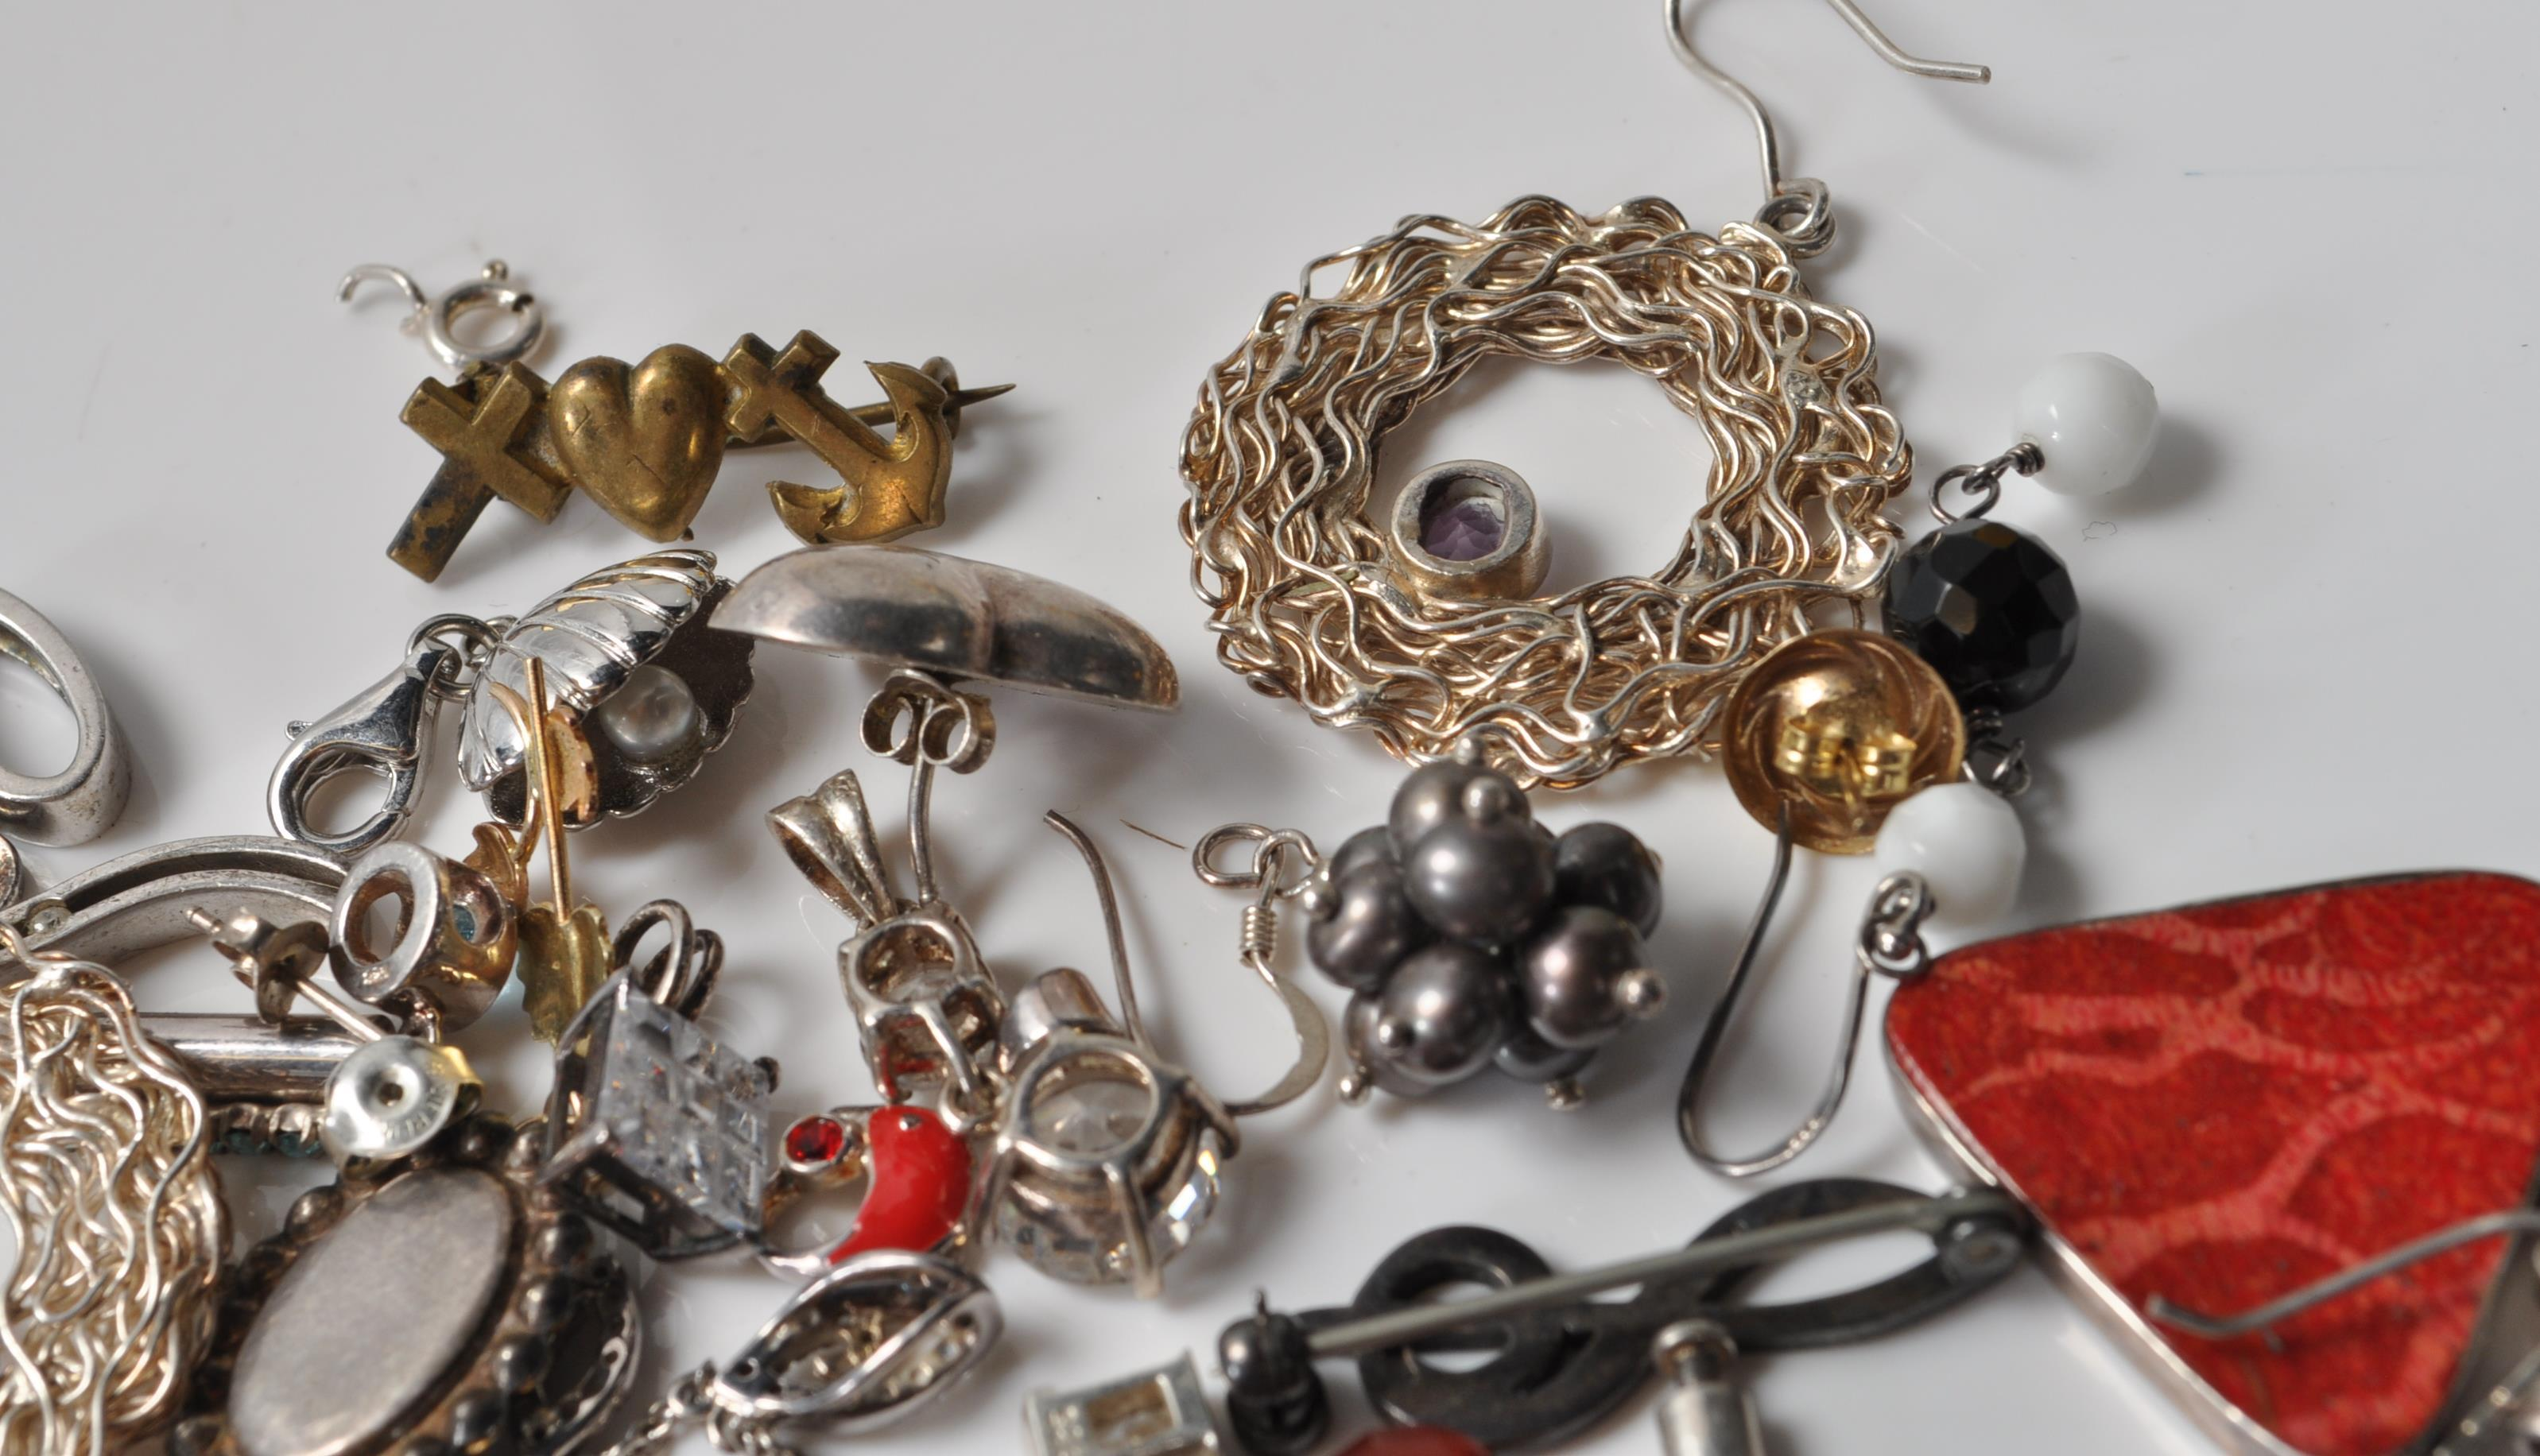 COLLECTION OF SILVER STAMPED 925 EARRINGS AND PENDANTS. - Image 5 of 5